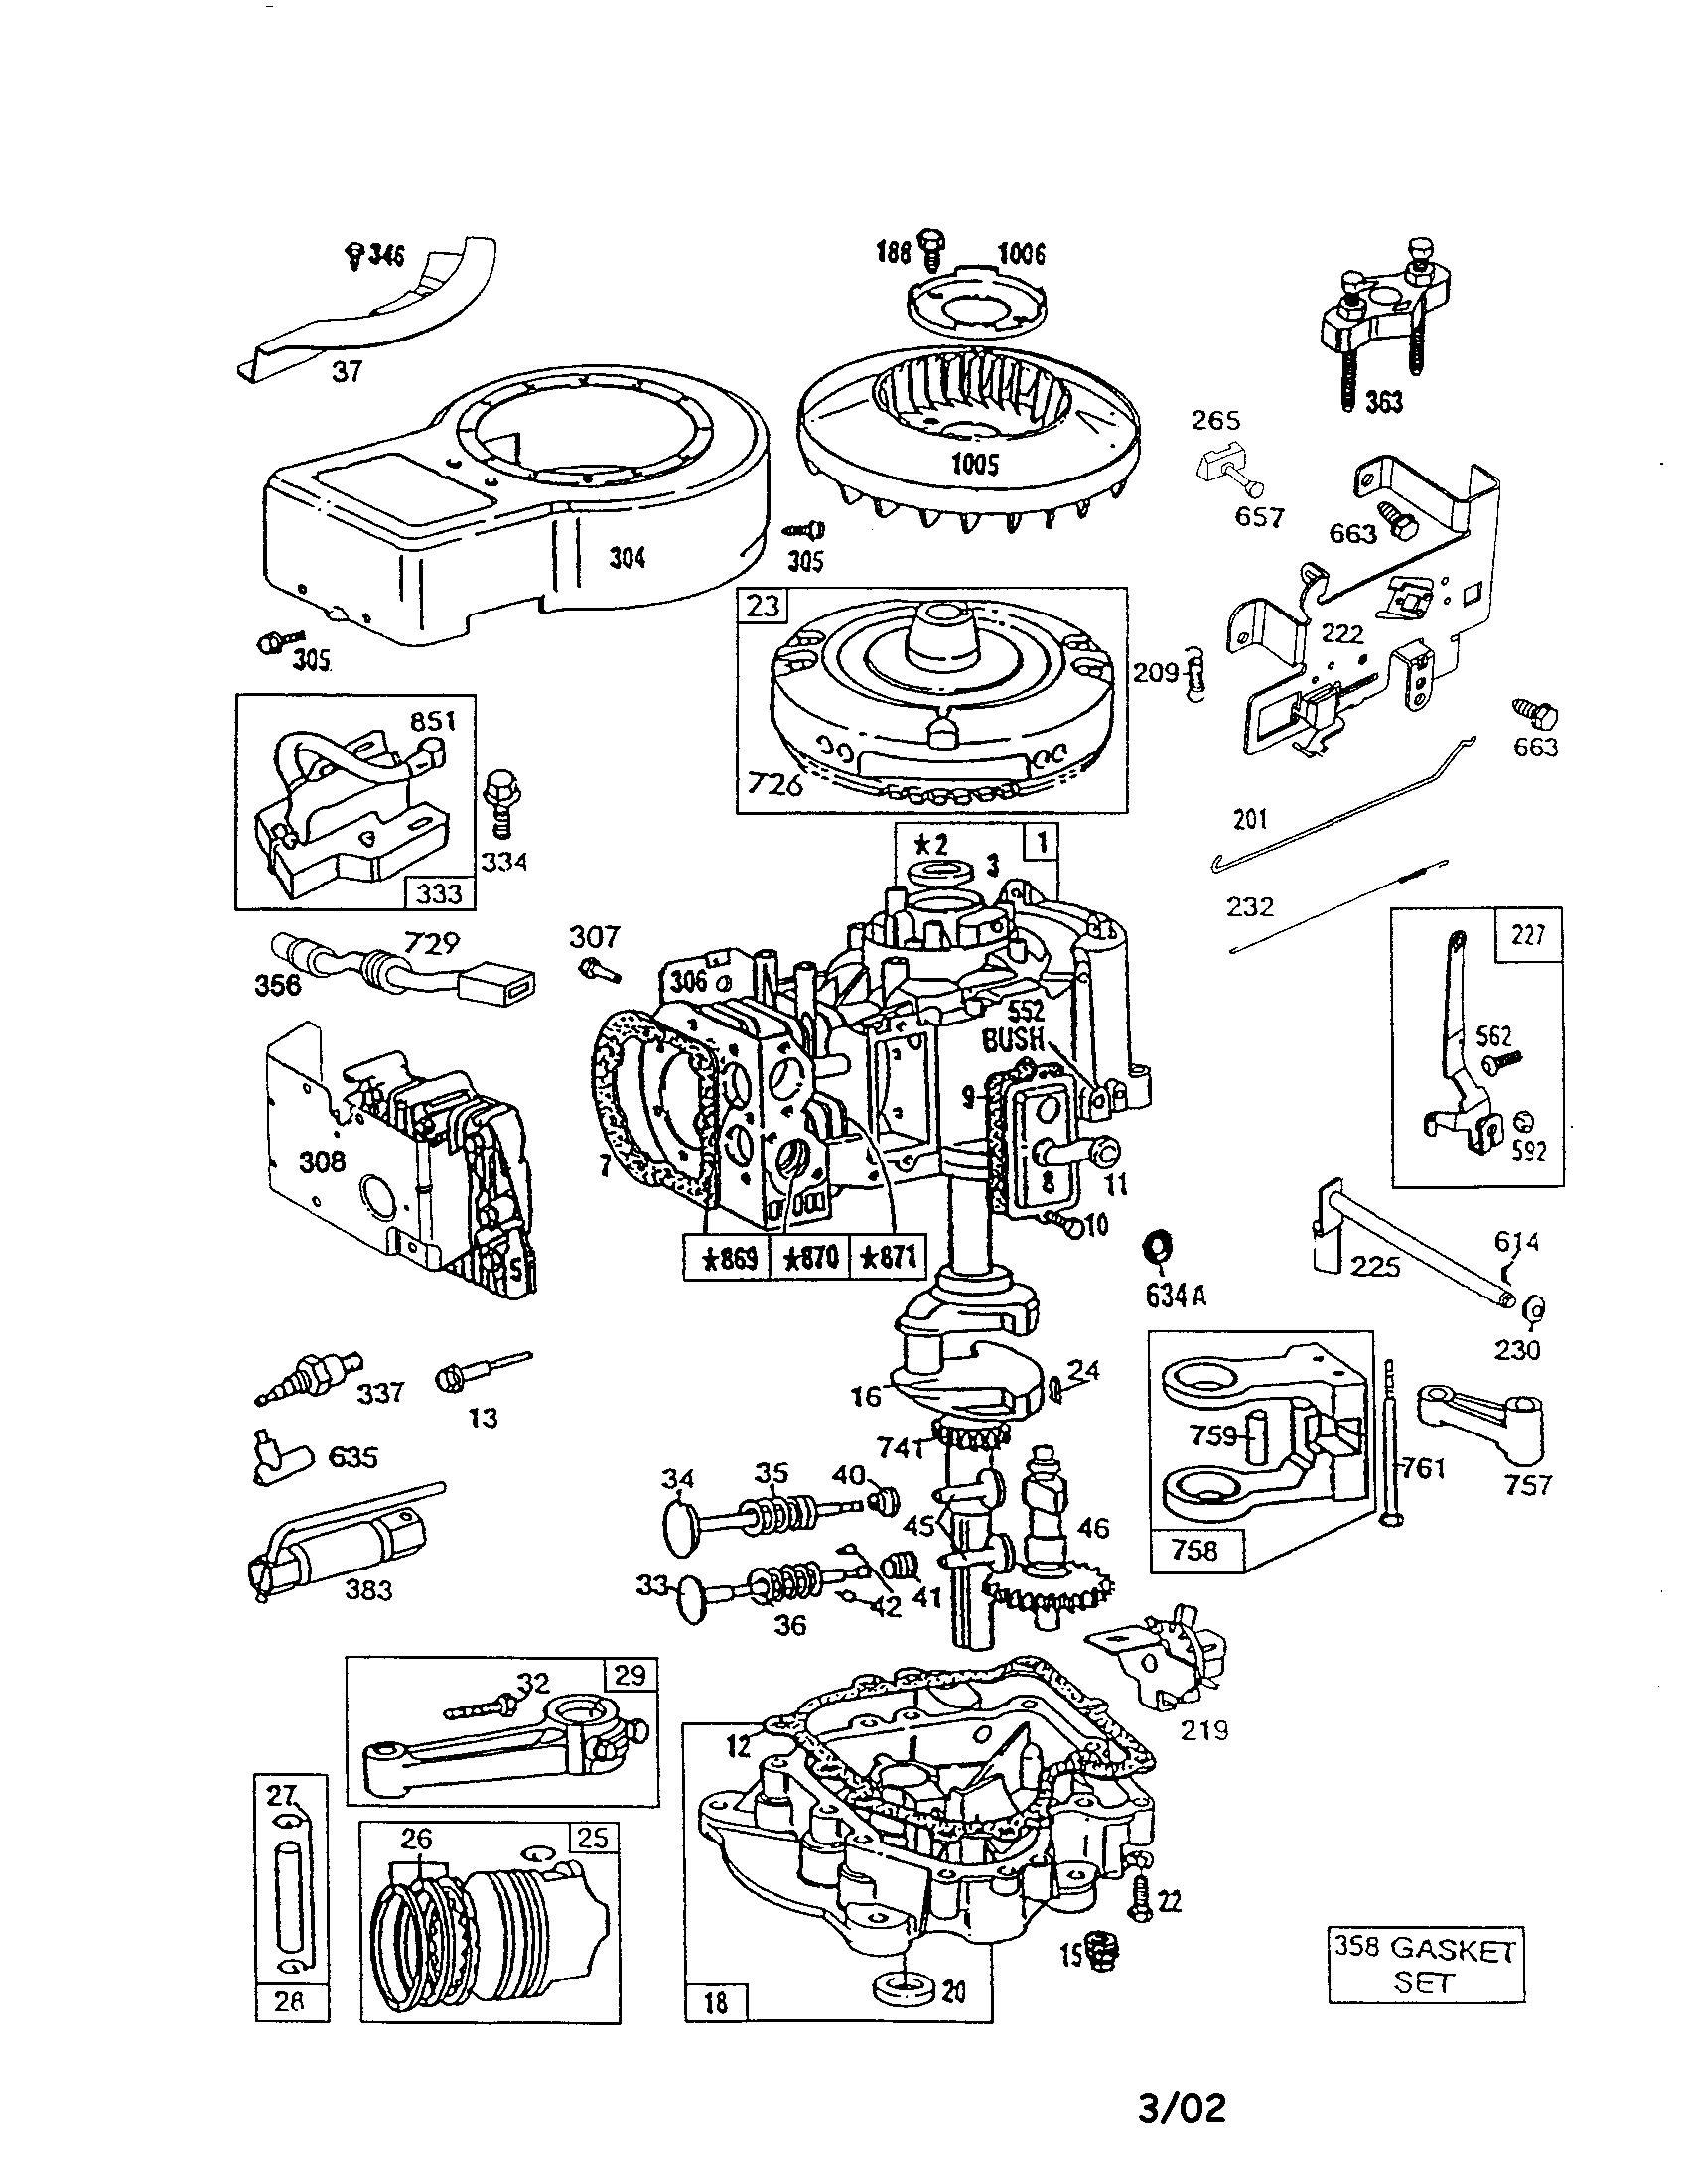 Briggs And Stratton Engine Model Number Location, Briggs